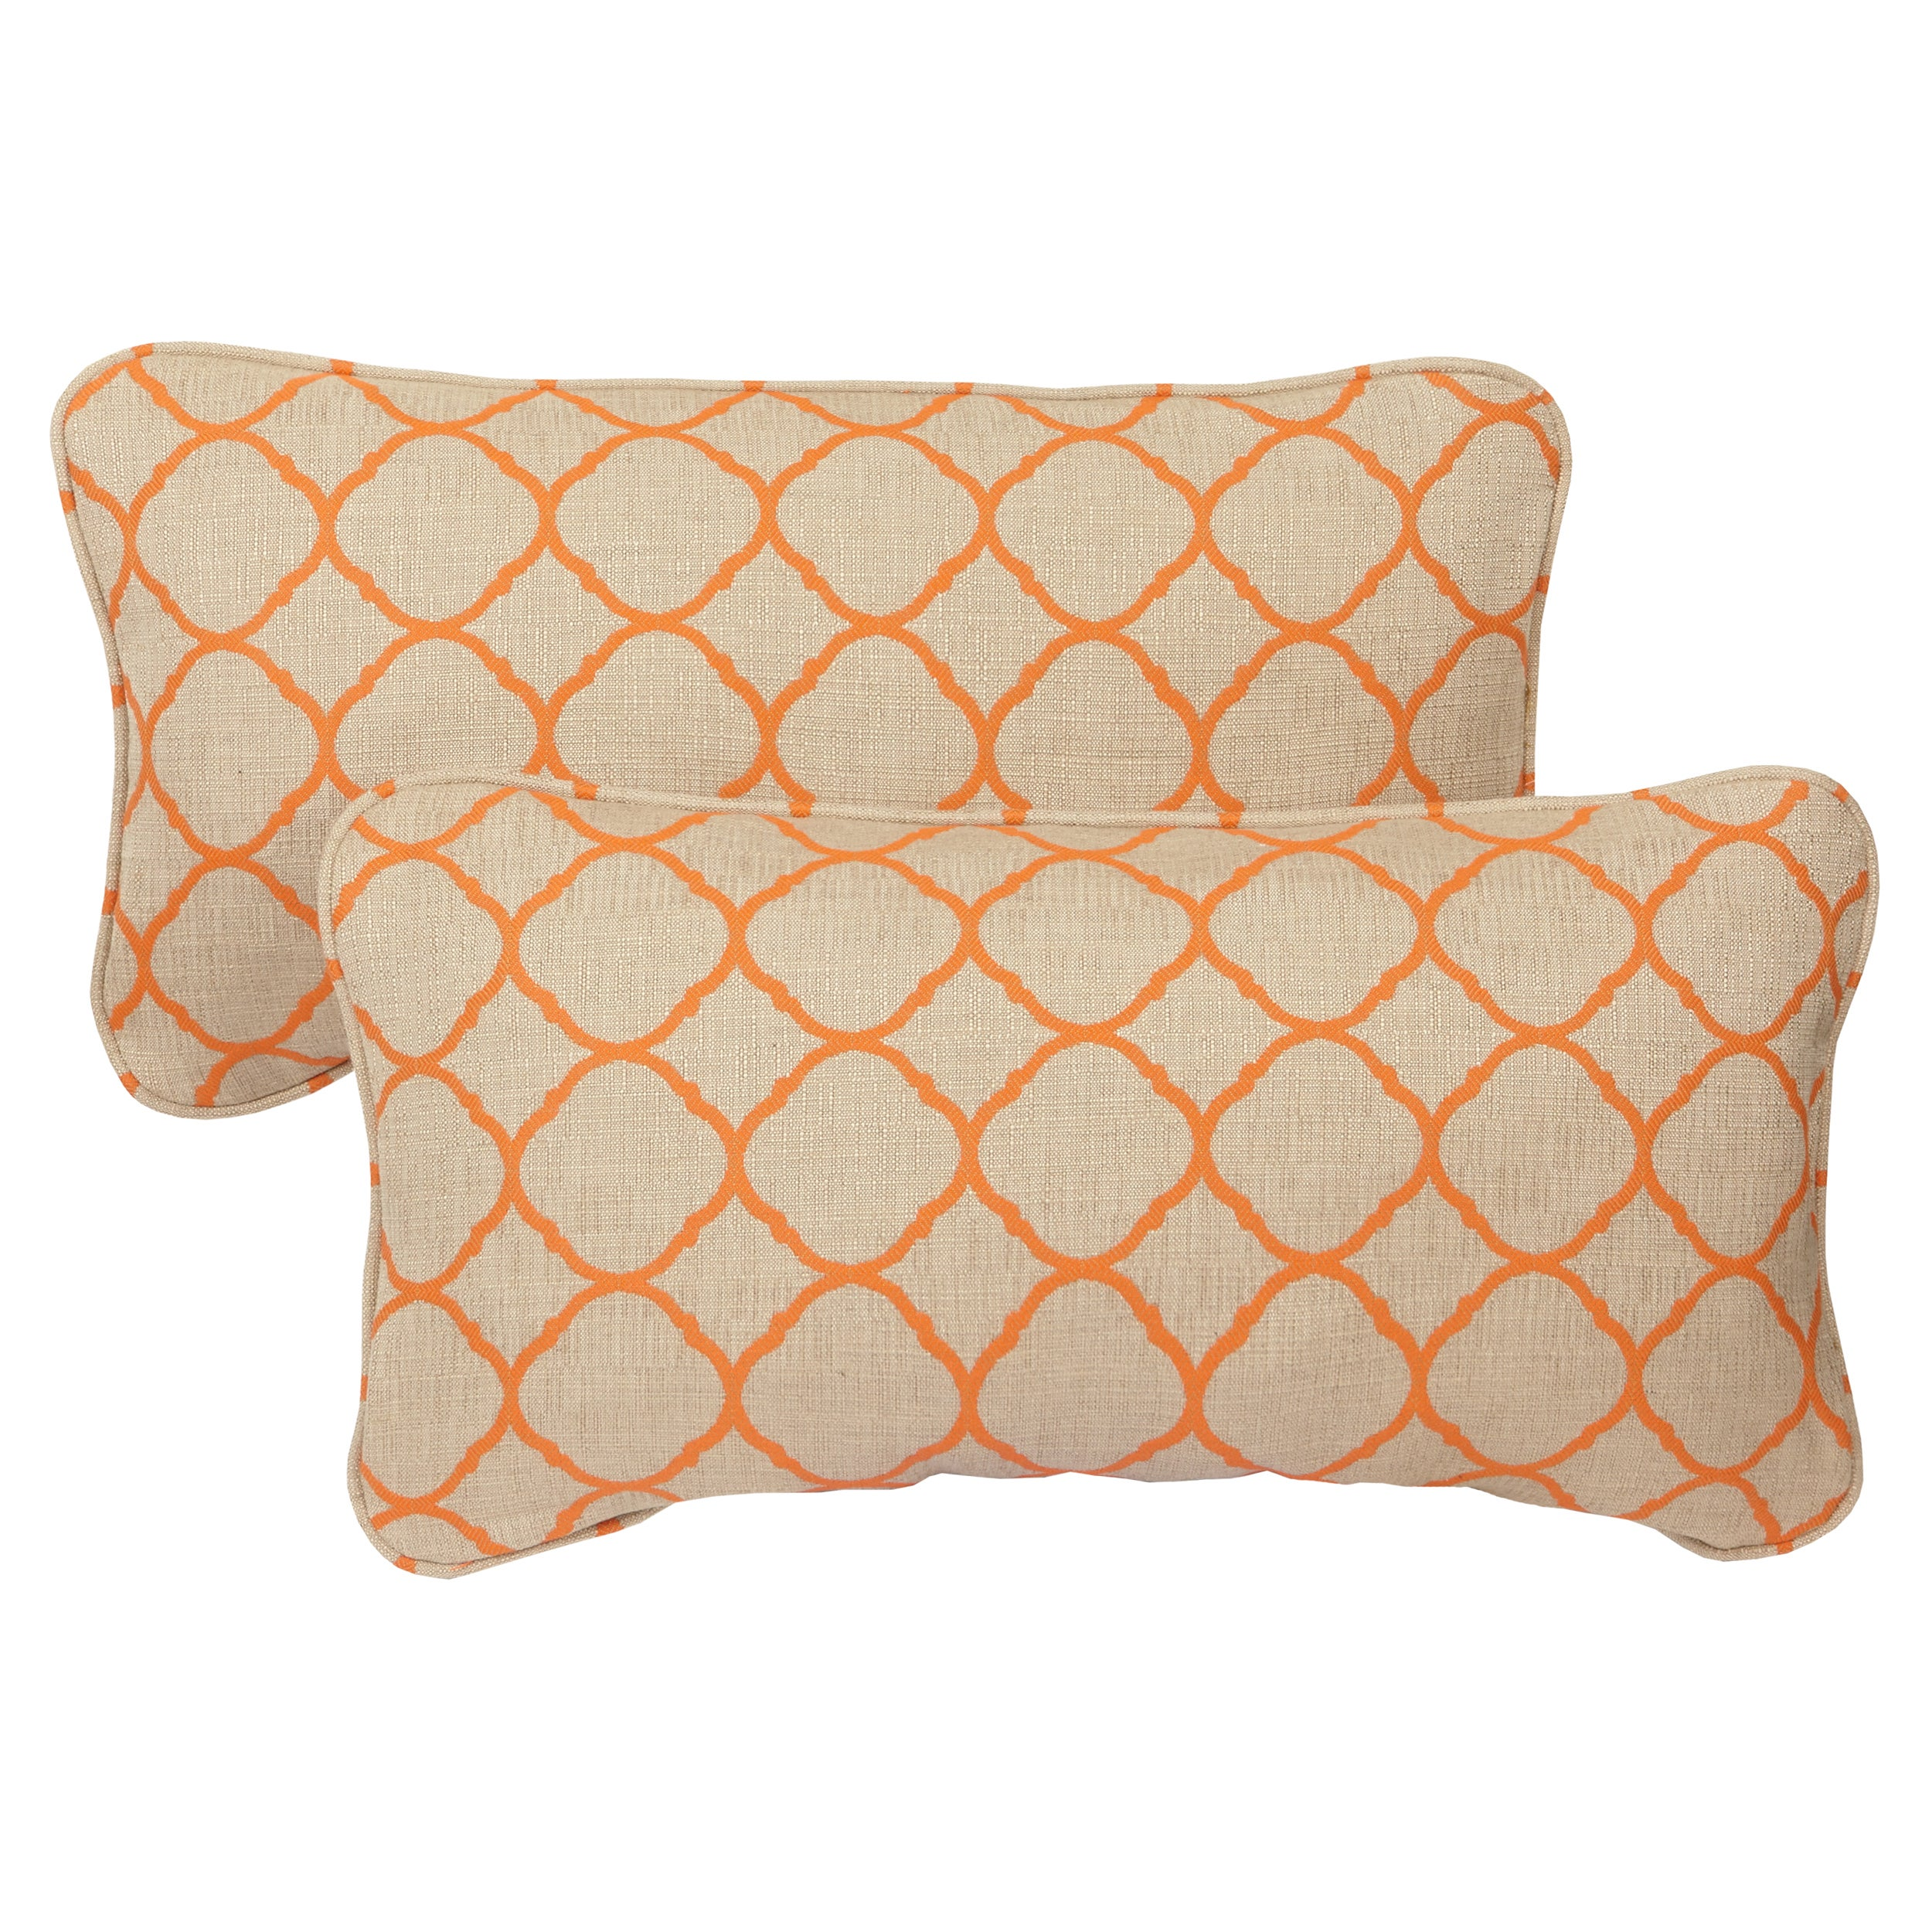 purple products by distressed parascandolo outdoor olm bohemia michelle lumbar main collections indoor pillows pillow